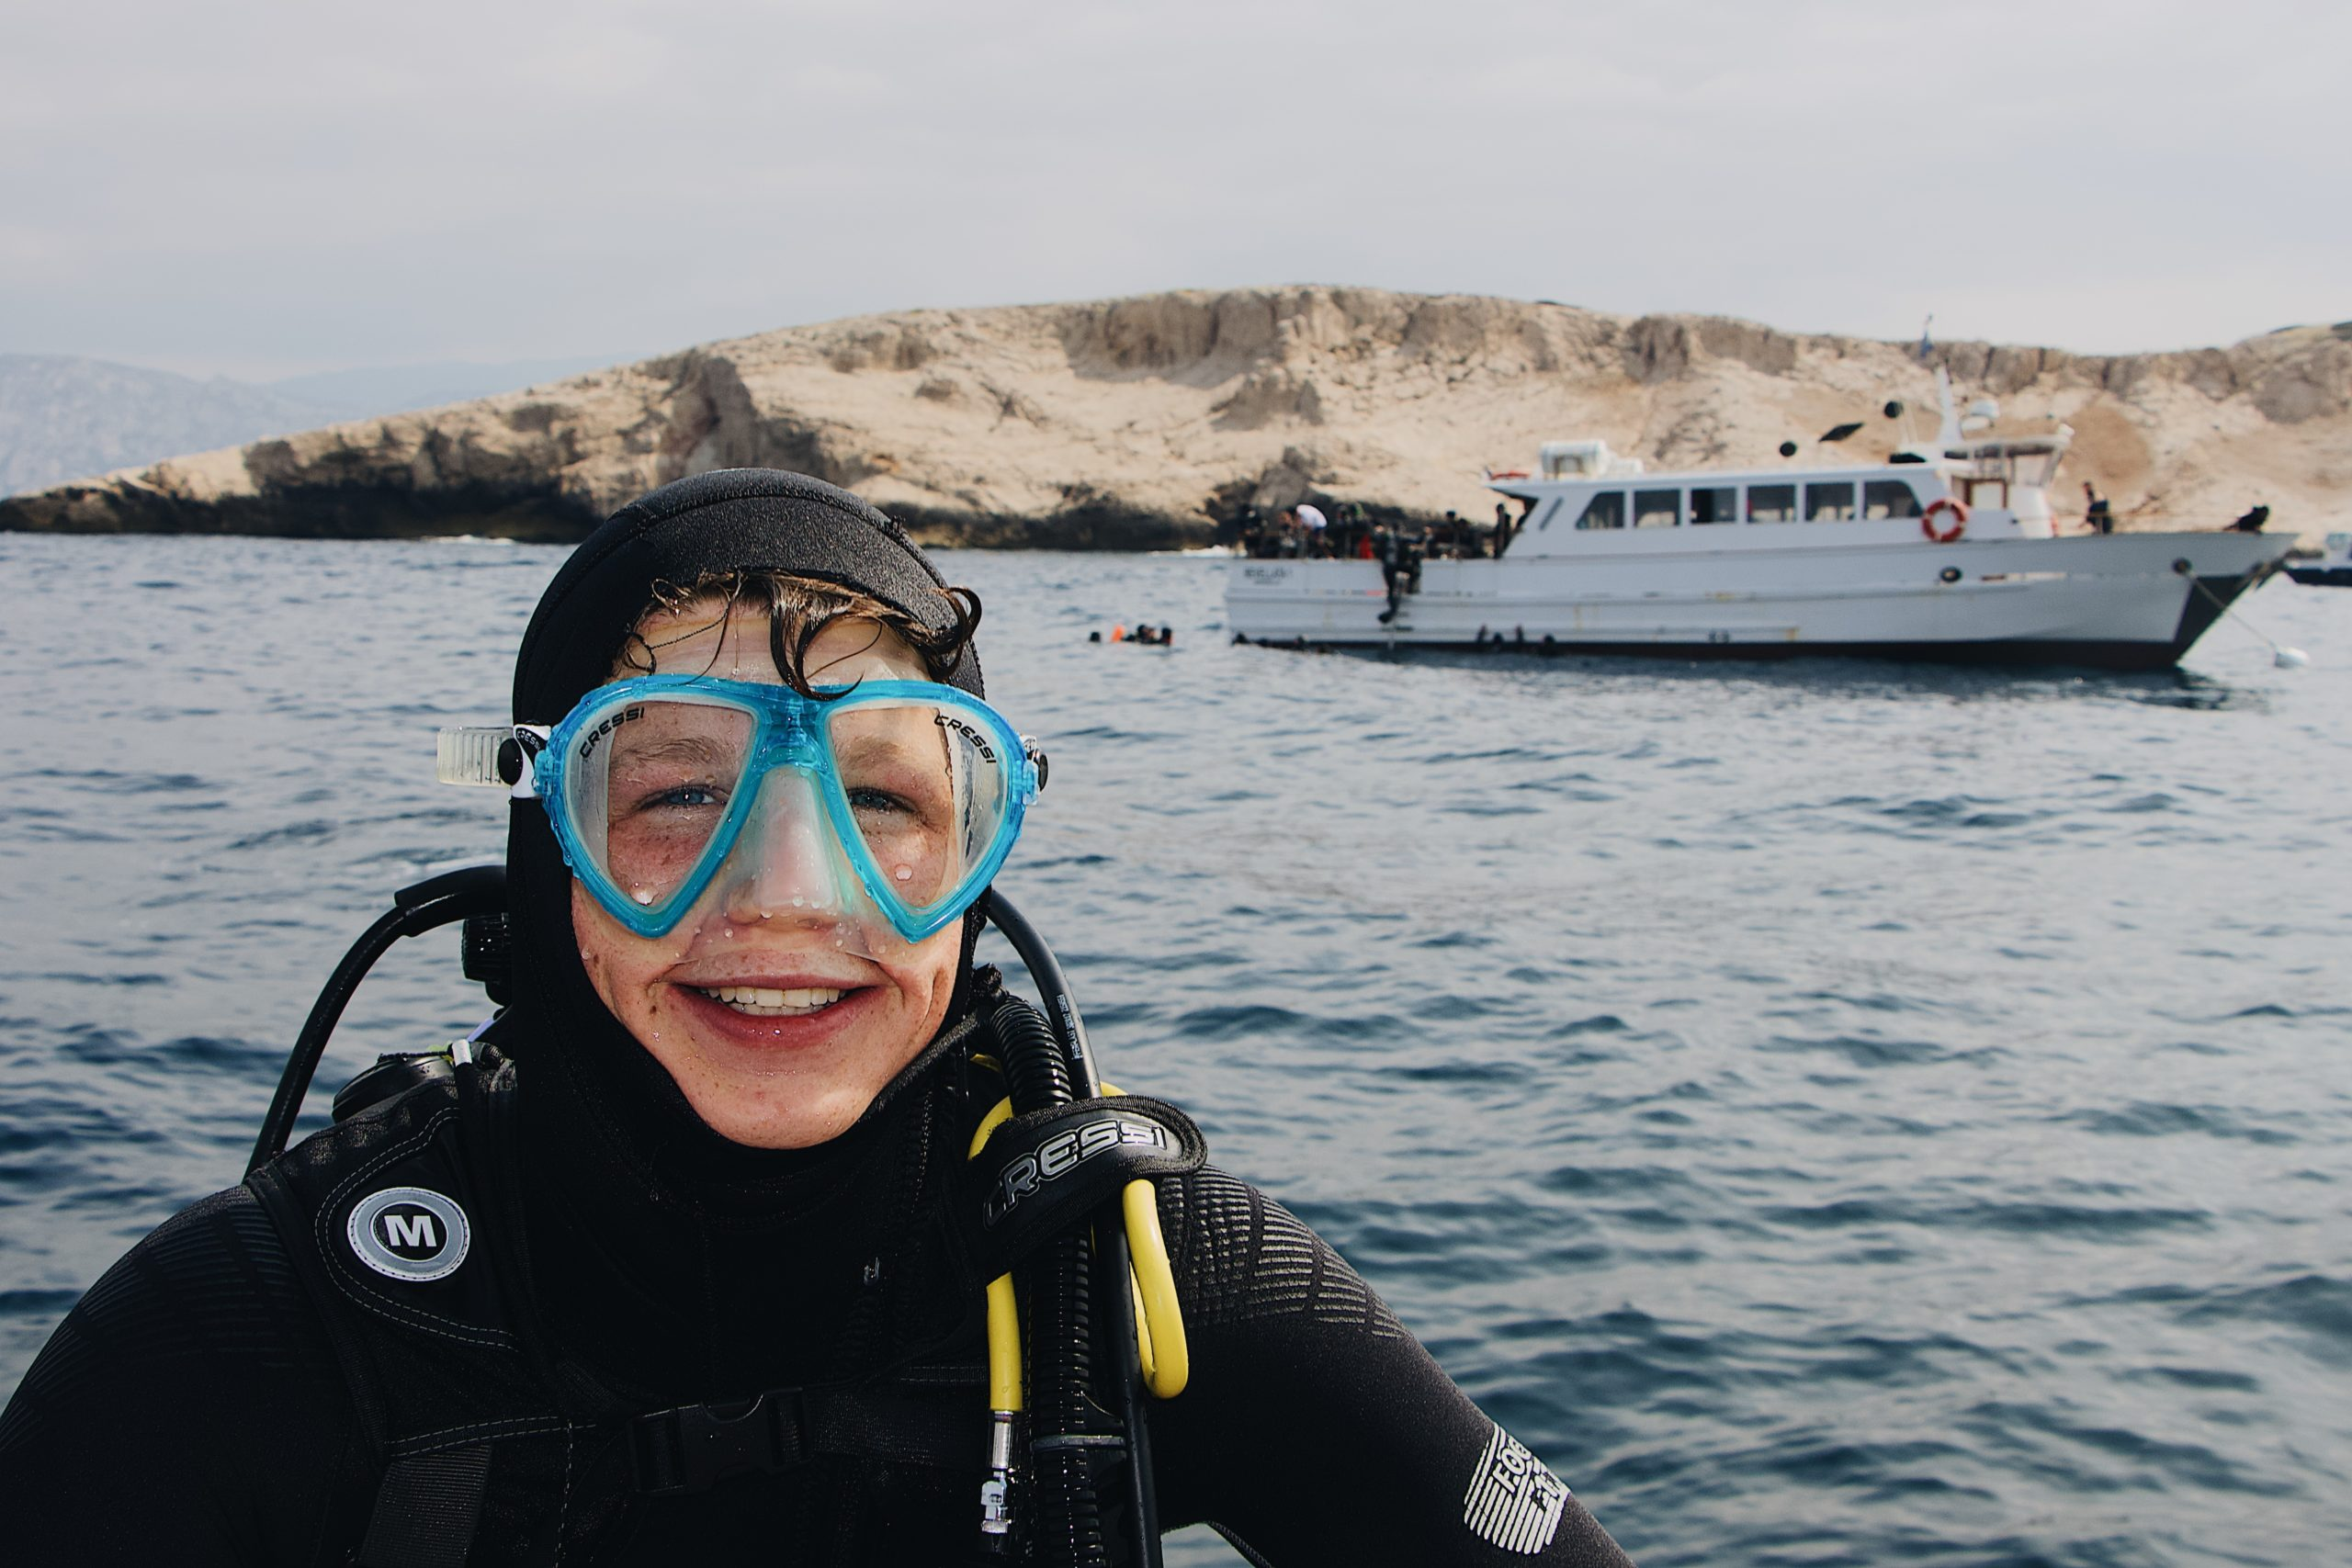 The Best Scuba Diving Masks For Every Budget 2020